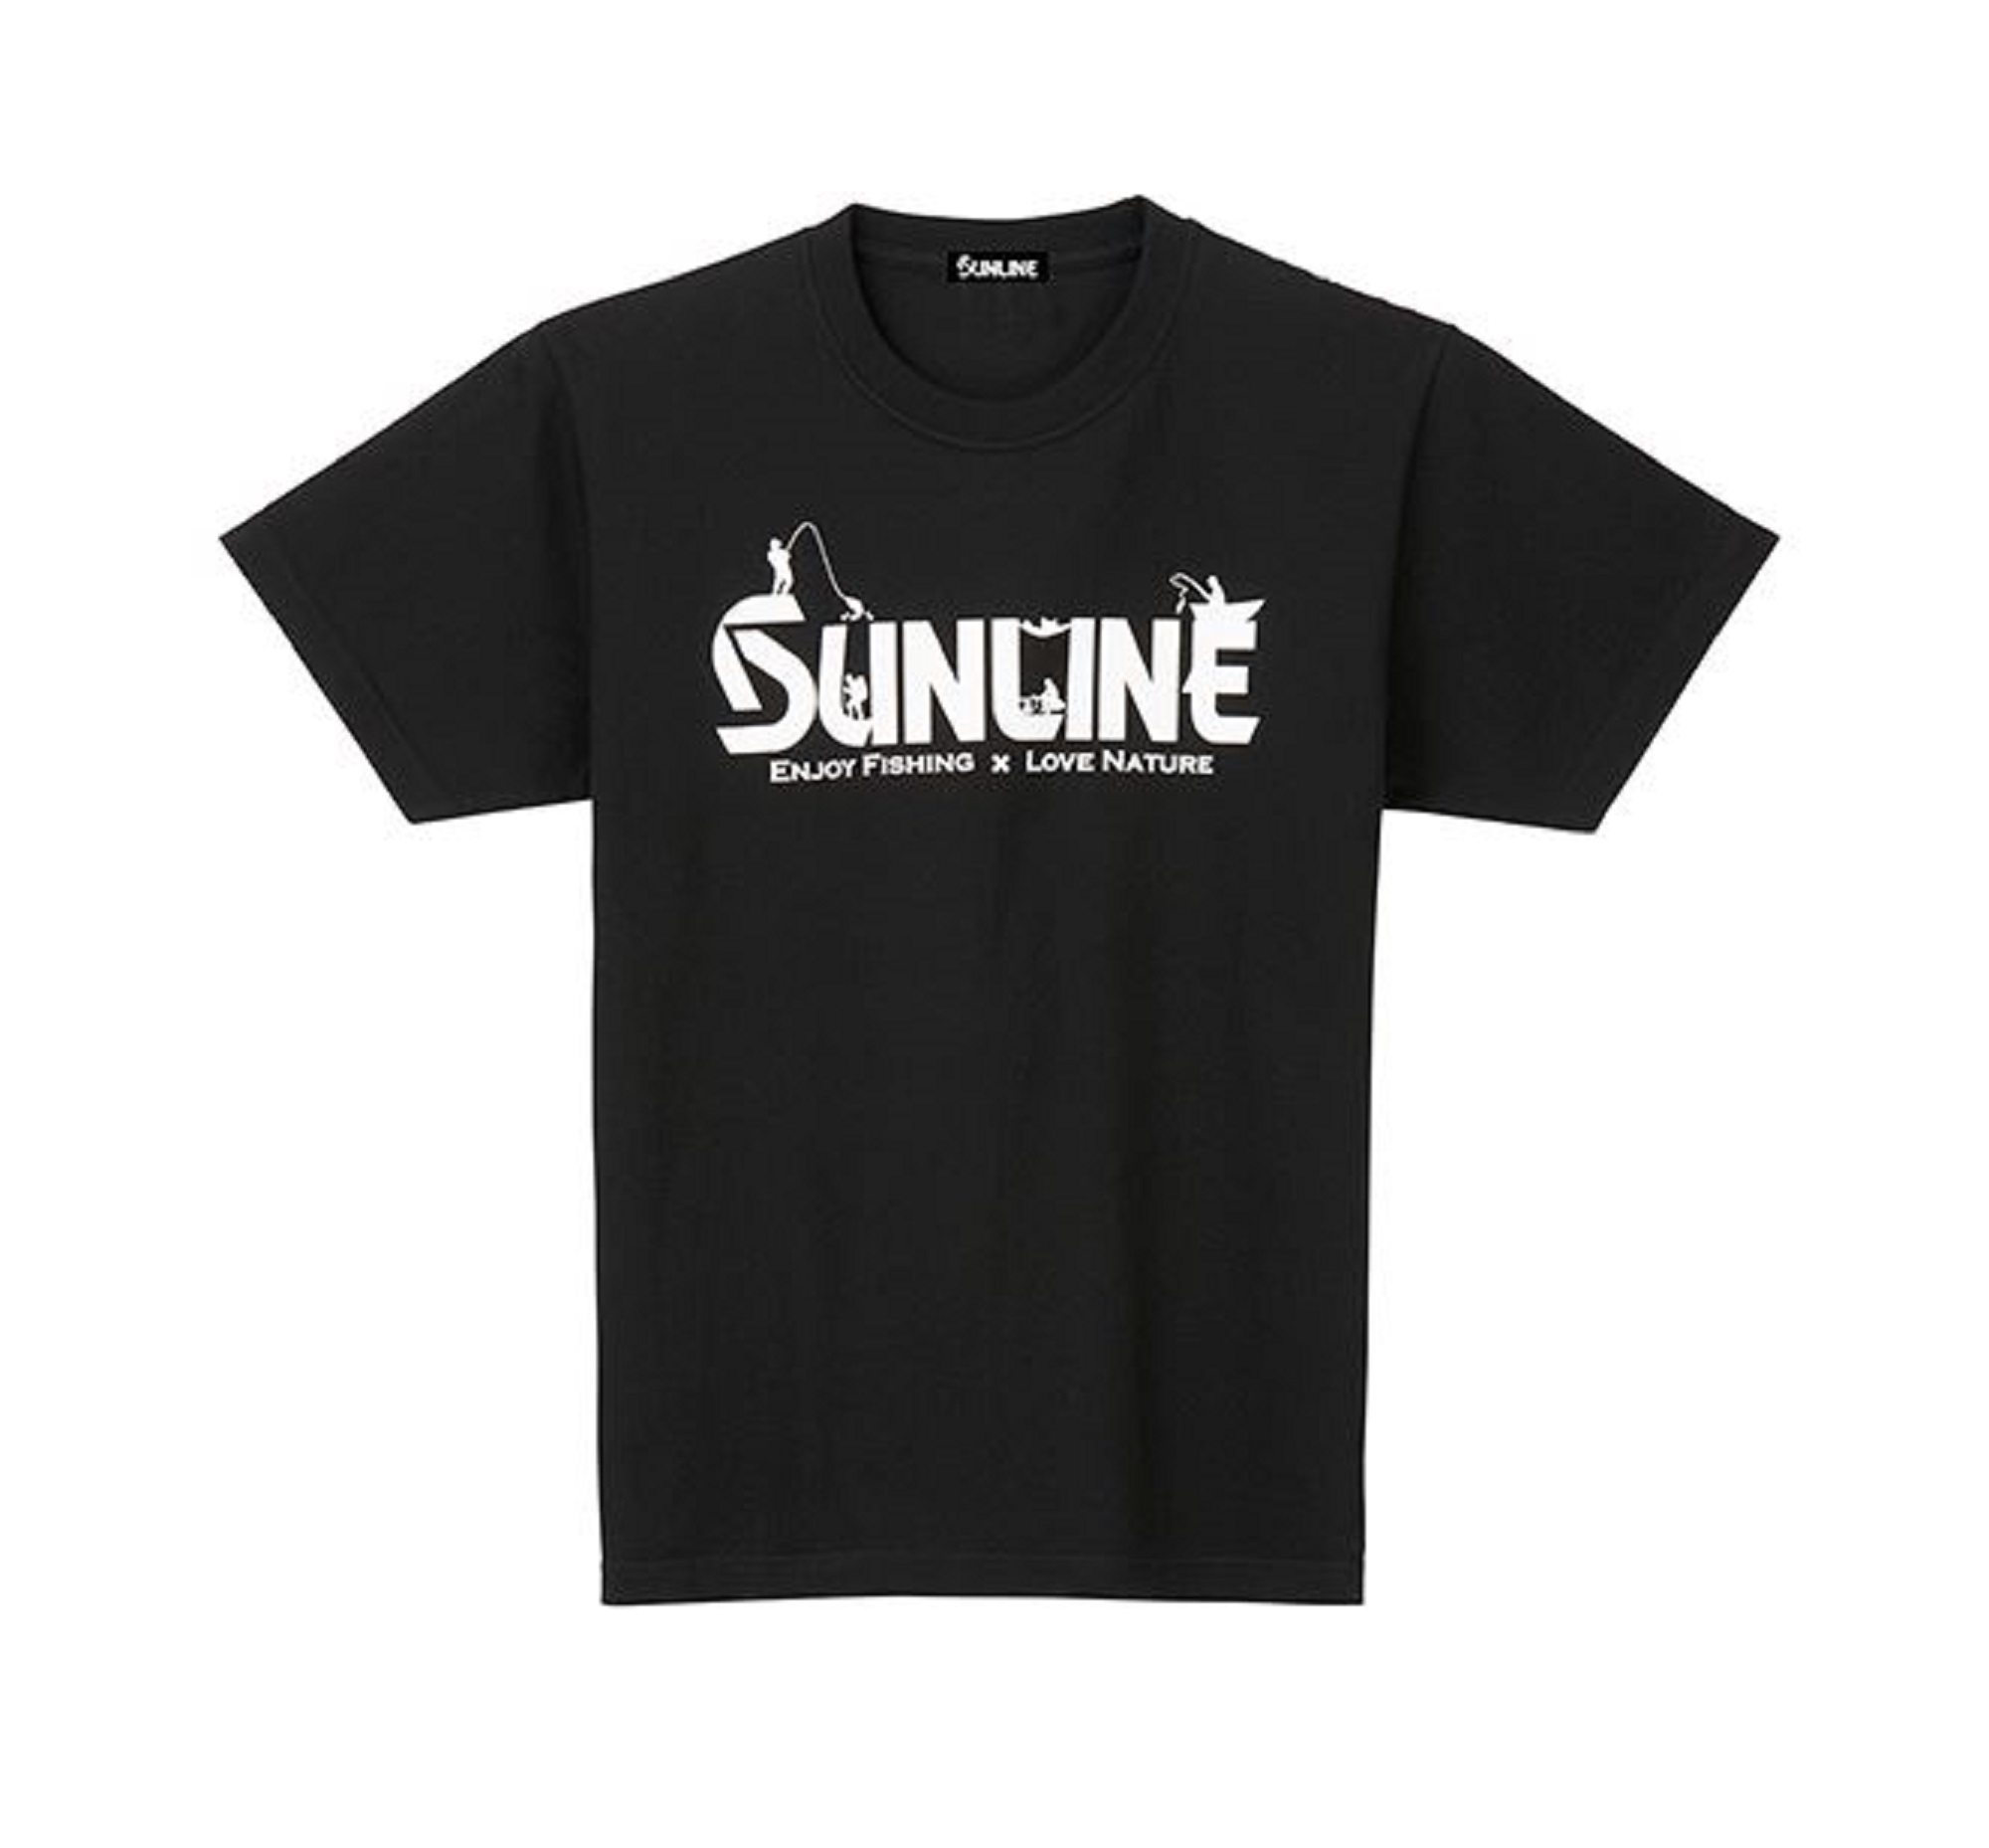 Sunline SUW-15020T T-Shirt Cotton Short Sleeve Black Size XL (3057)